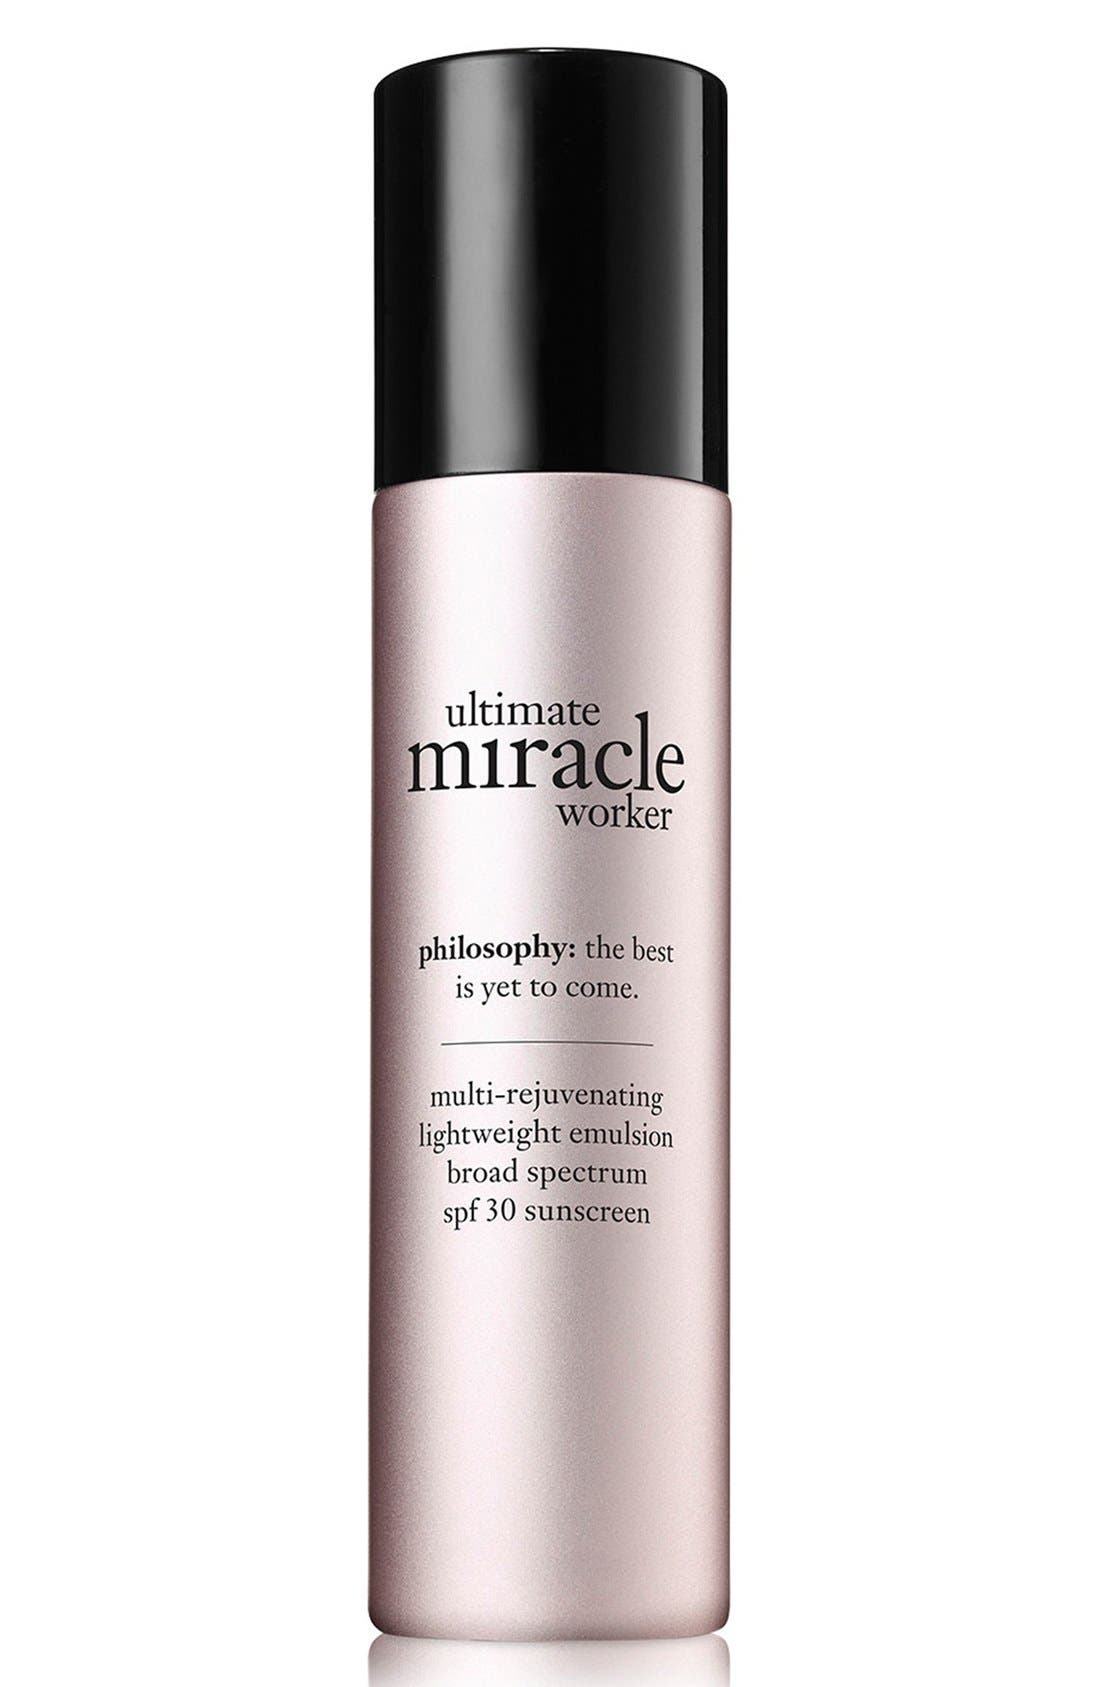 philosophy 'ultimate miracle worker' multi-rejuvenating lightweight emulsion broad spectrum SPF 30 sunscreen